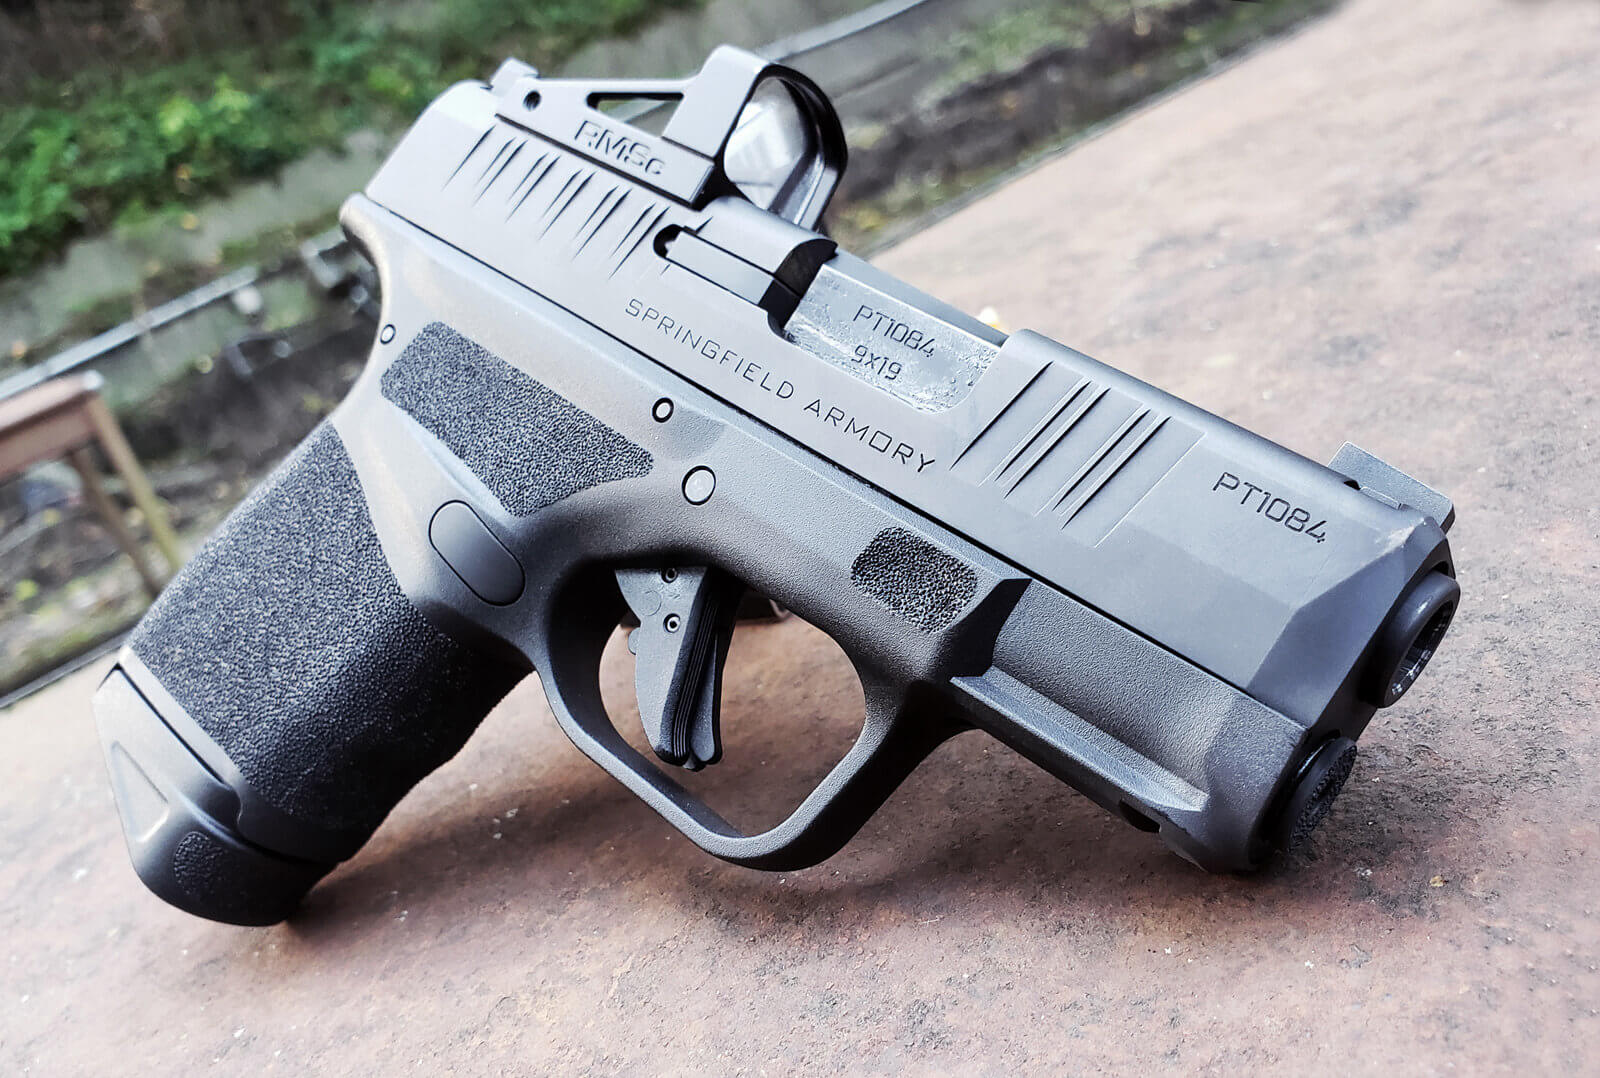 New Springfield Armory Hellcat side view on the range